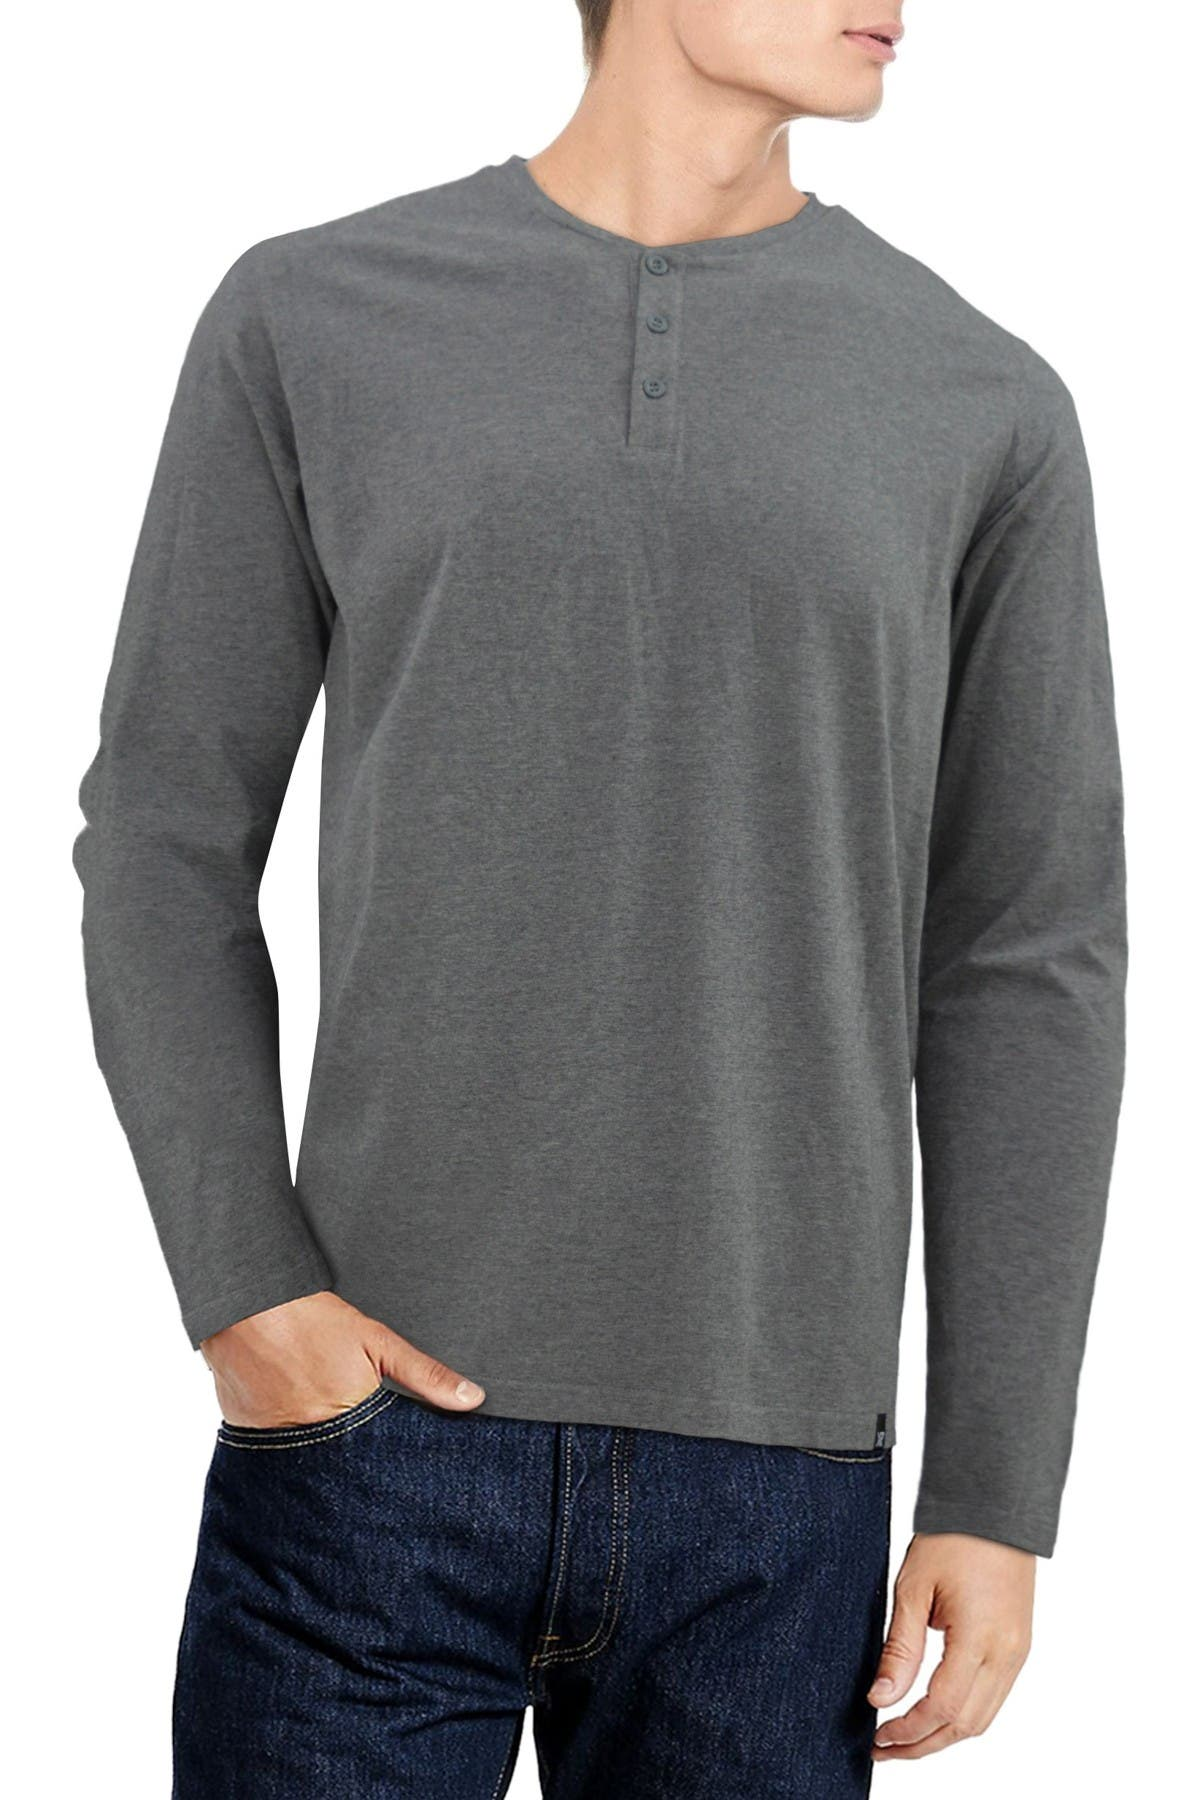 Image of XRAY Long Sleeve Henley Shirt